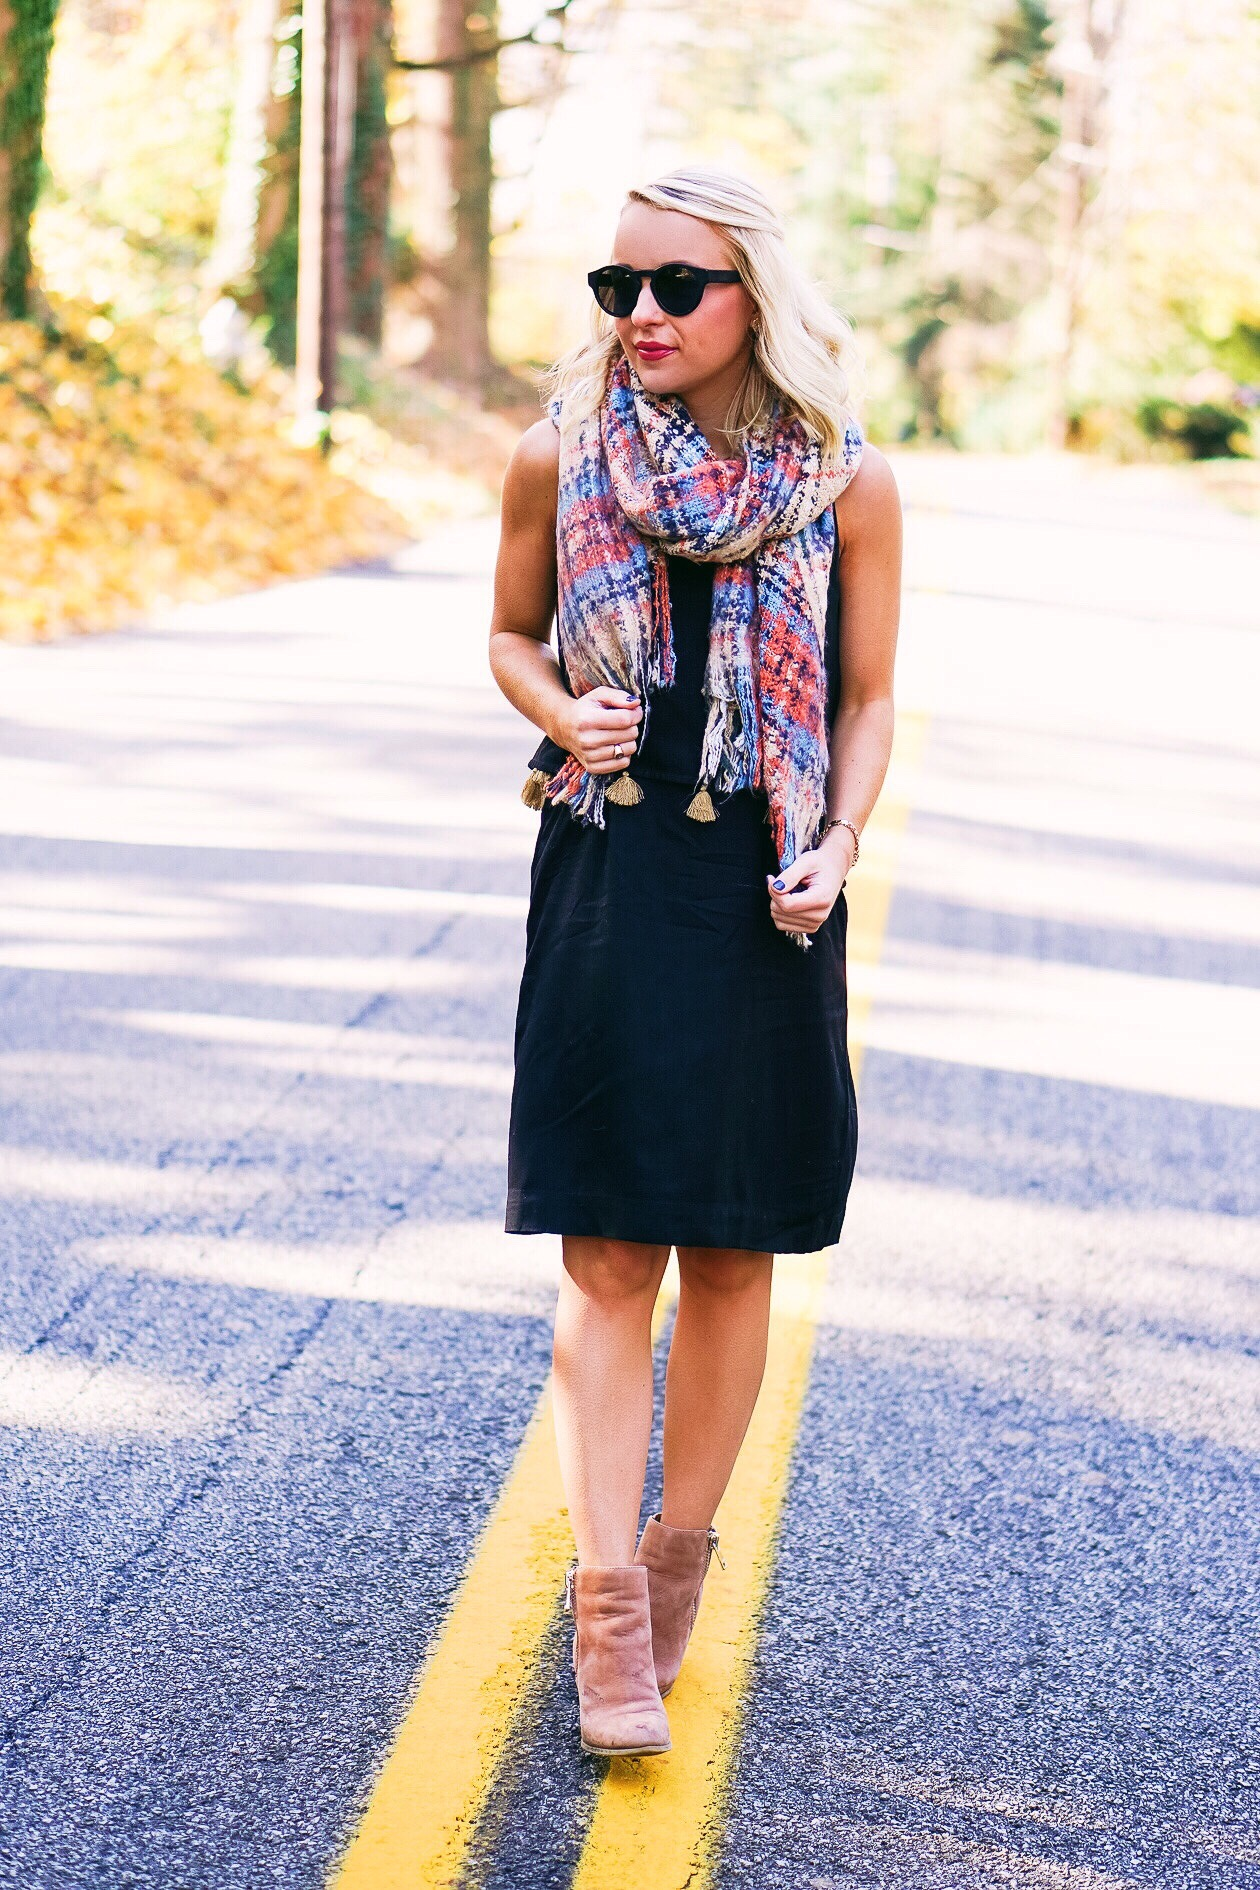 Black dress with gold tassels and blanket scarf